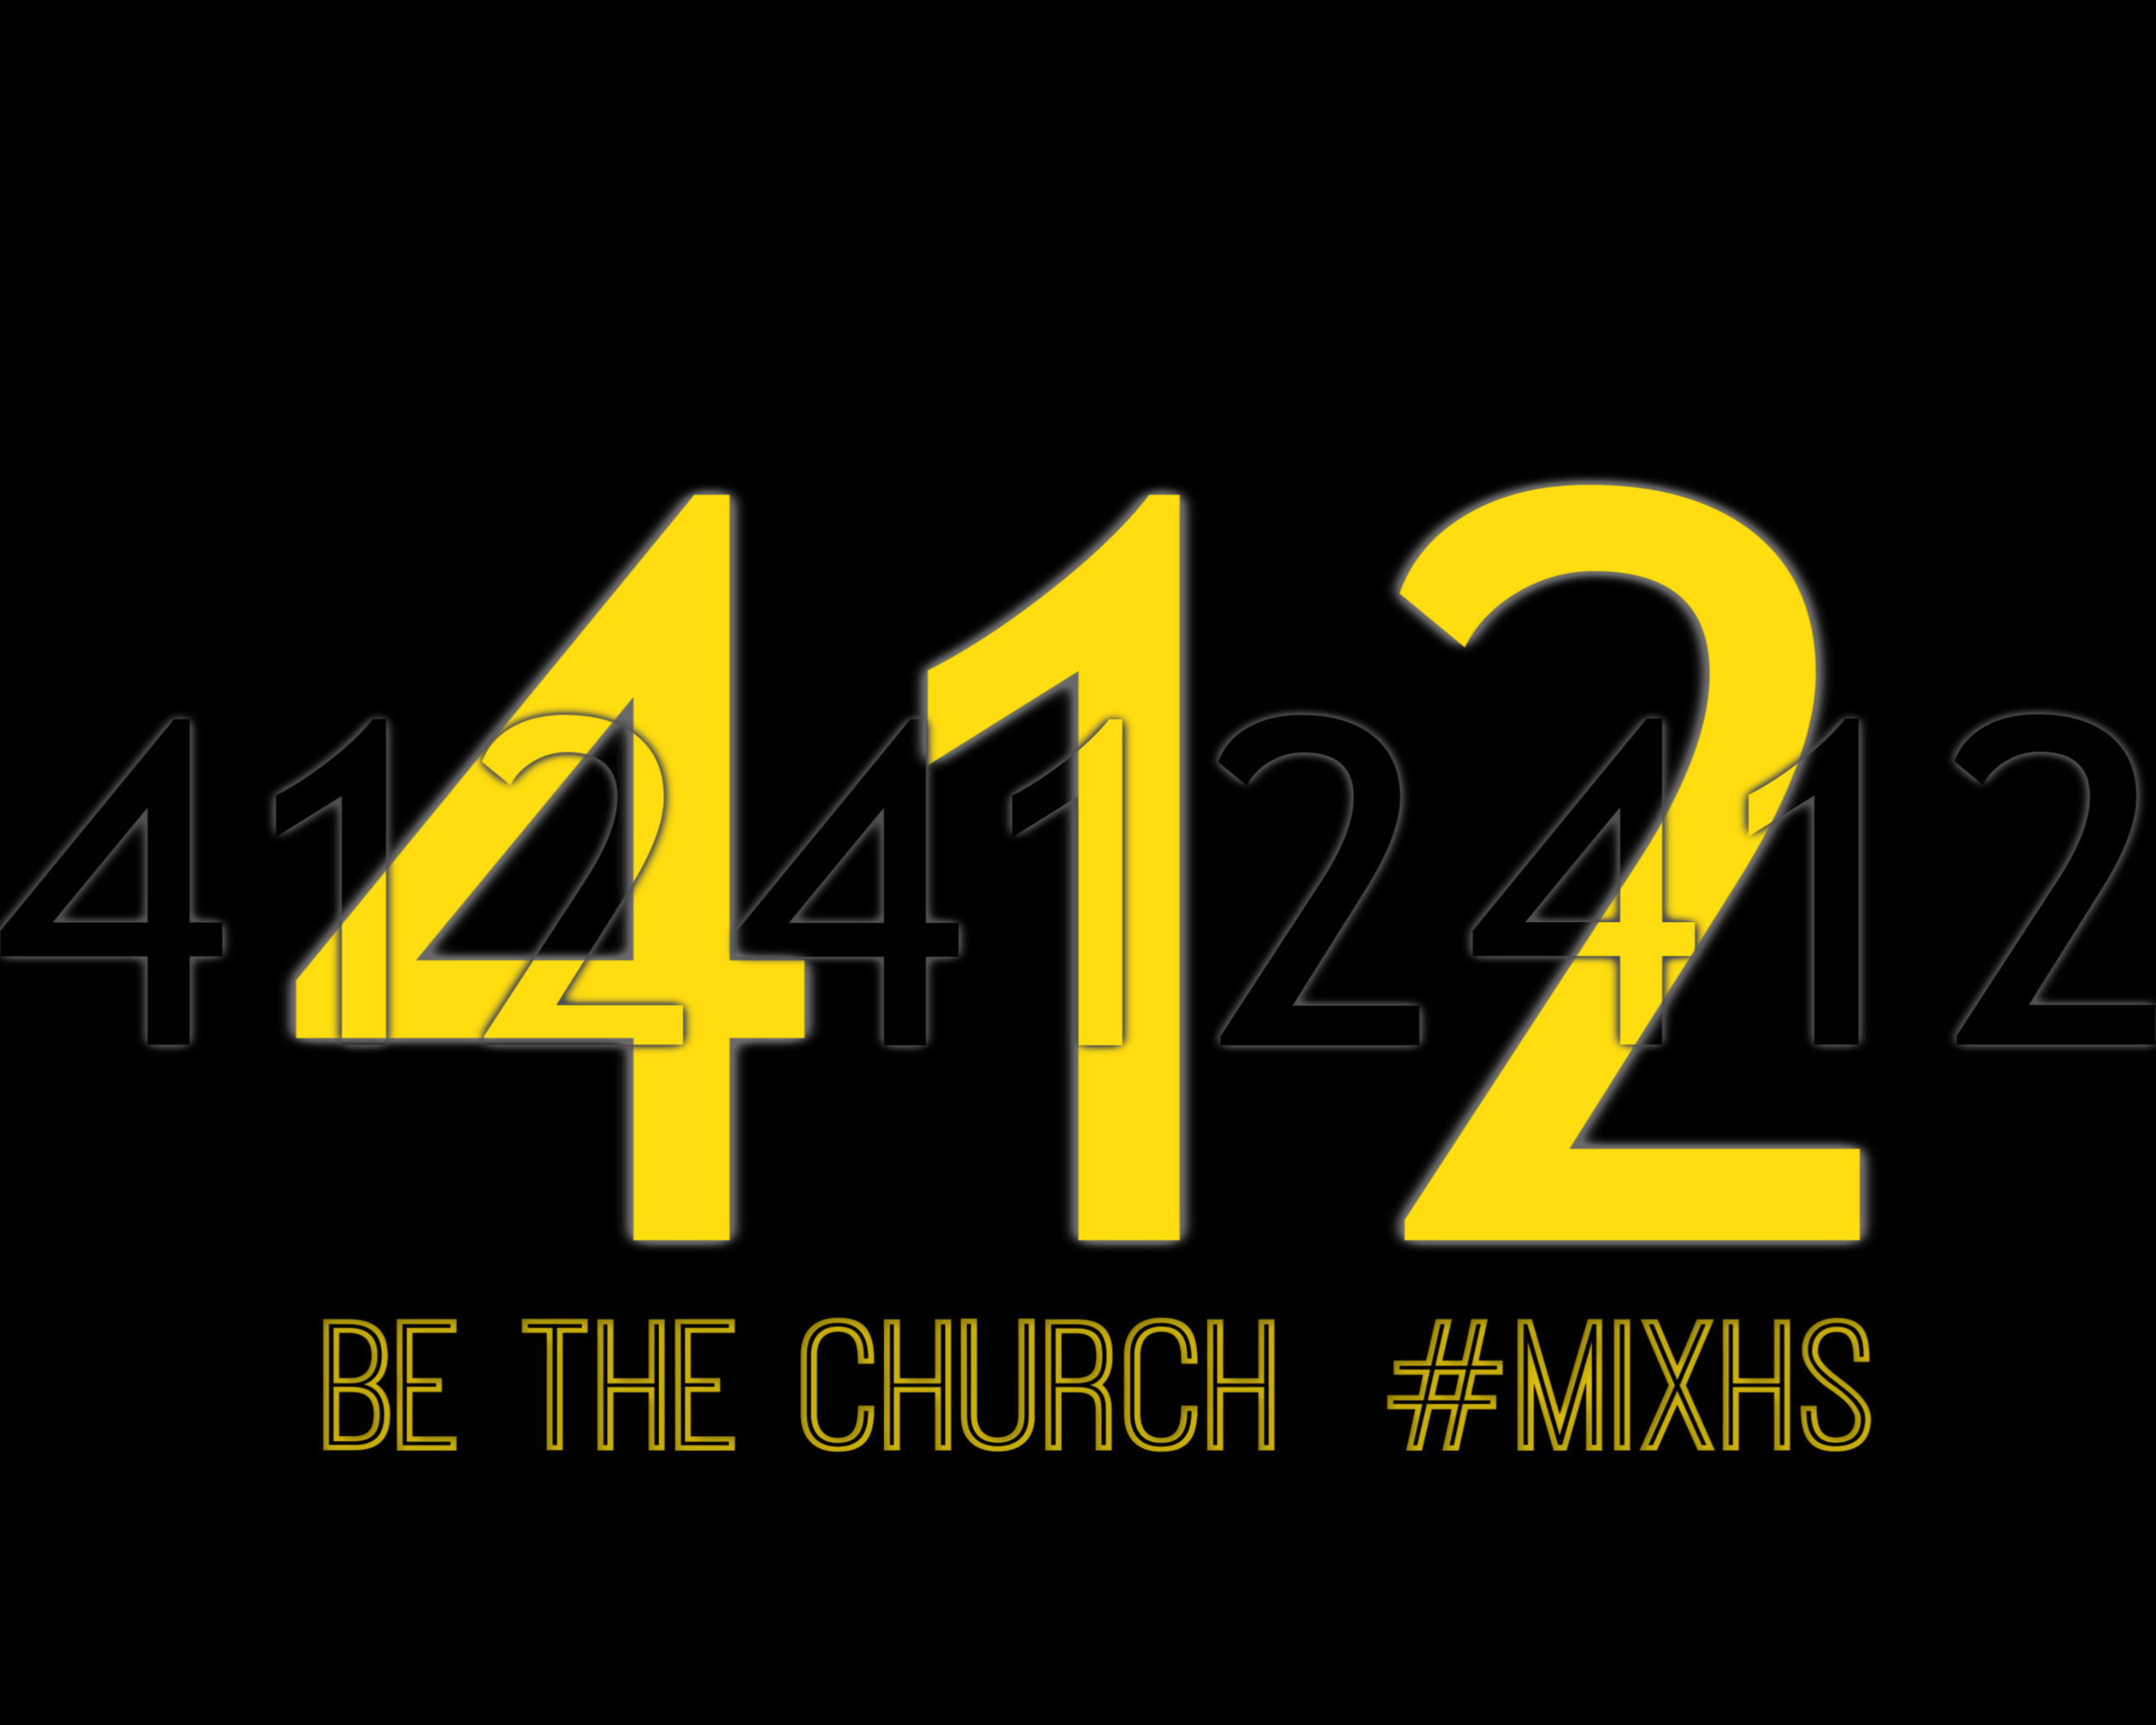 take action - Want to take the next step in your walk of faith? Click the link below to learn more about the leadership and growth opportunities we have here at MixHS.